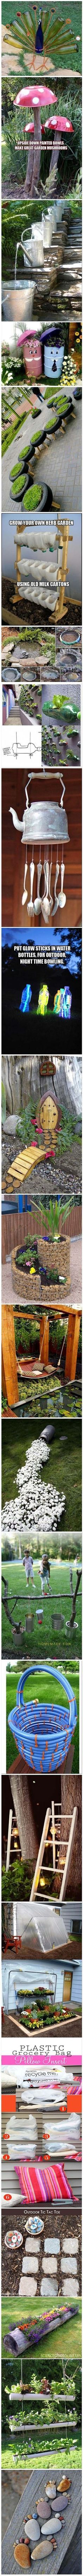 Garden Decor -- a lot of the stuff is recycled, making these crafts even more awesome!